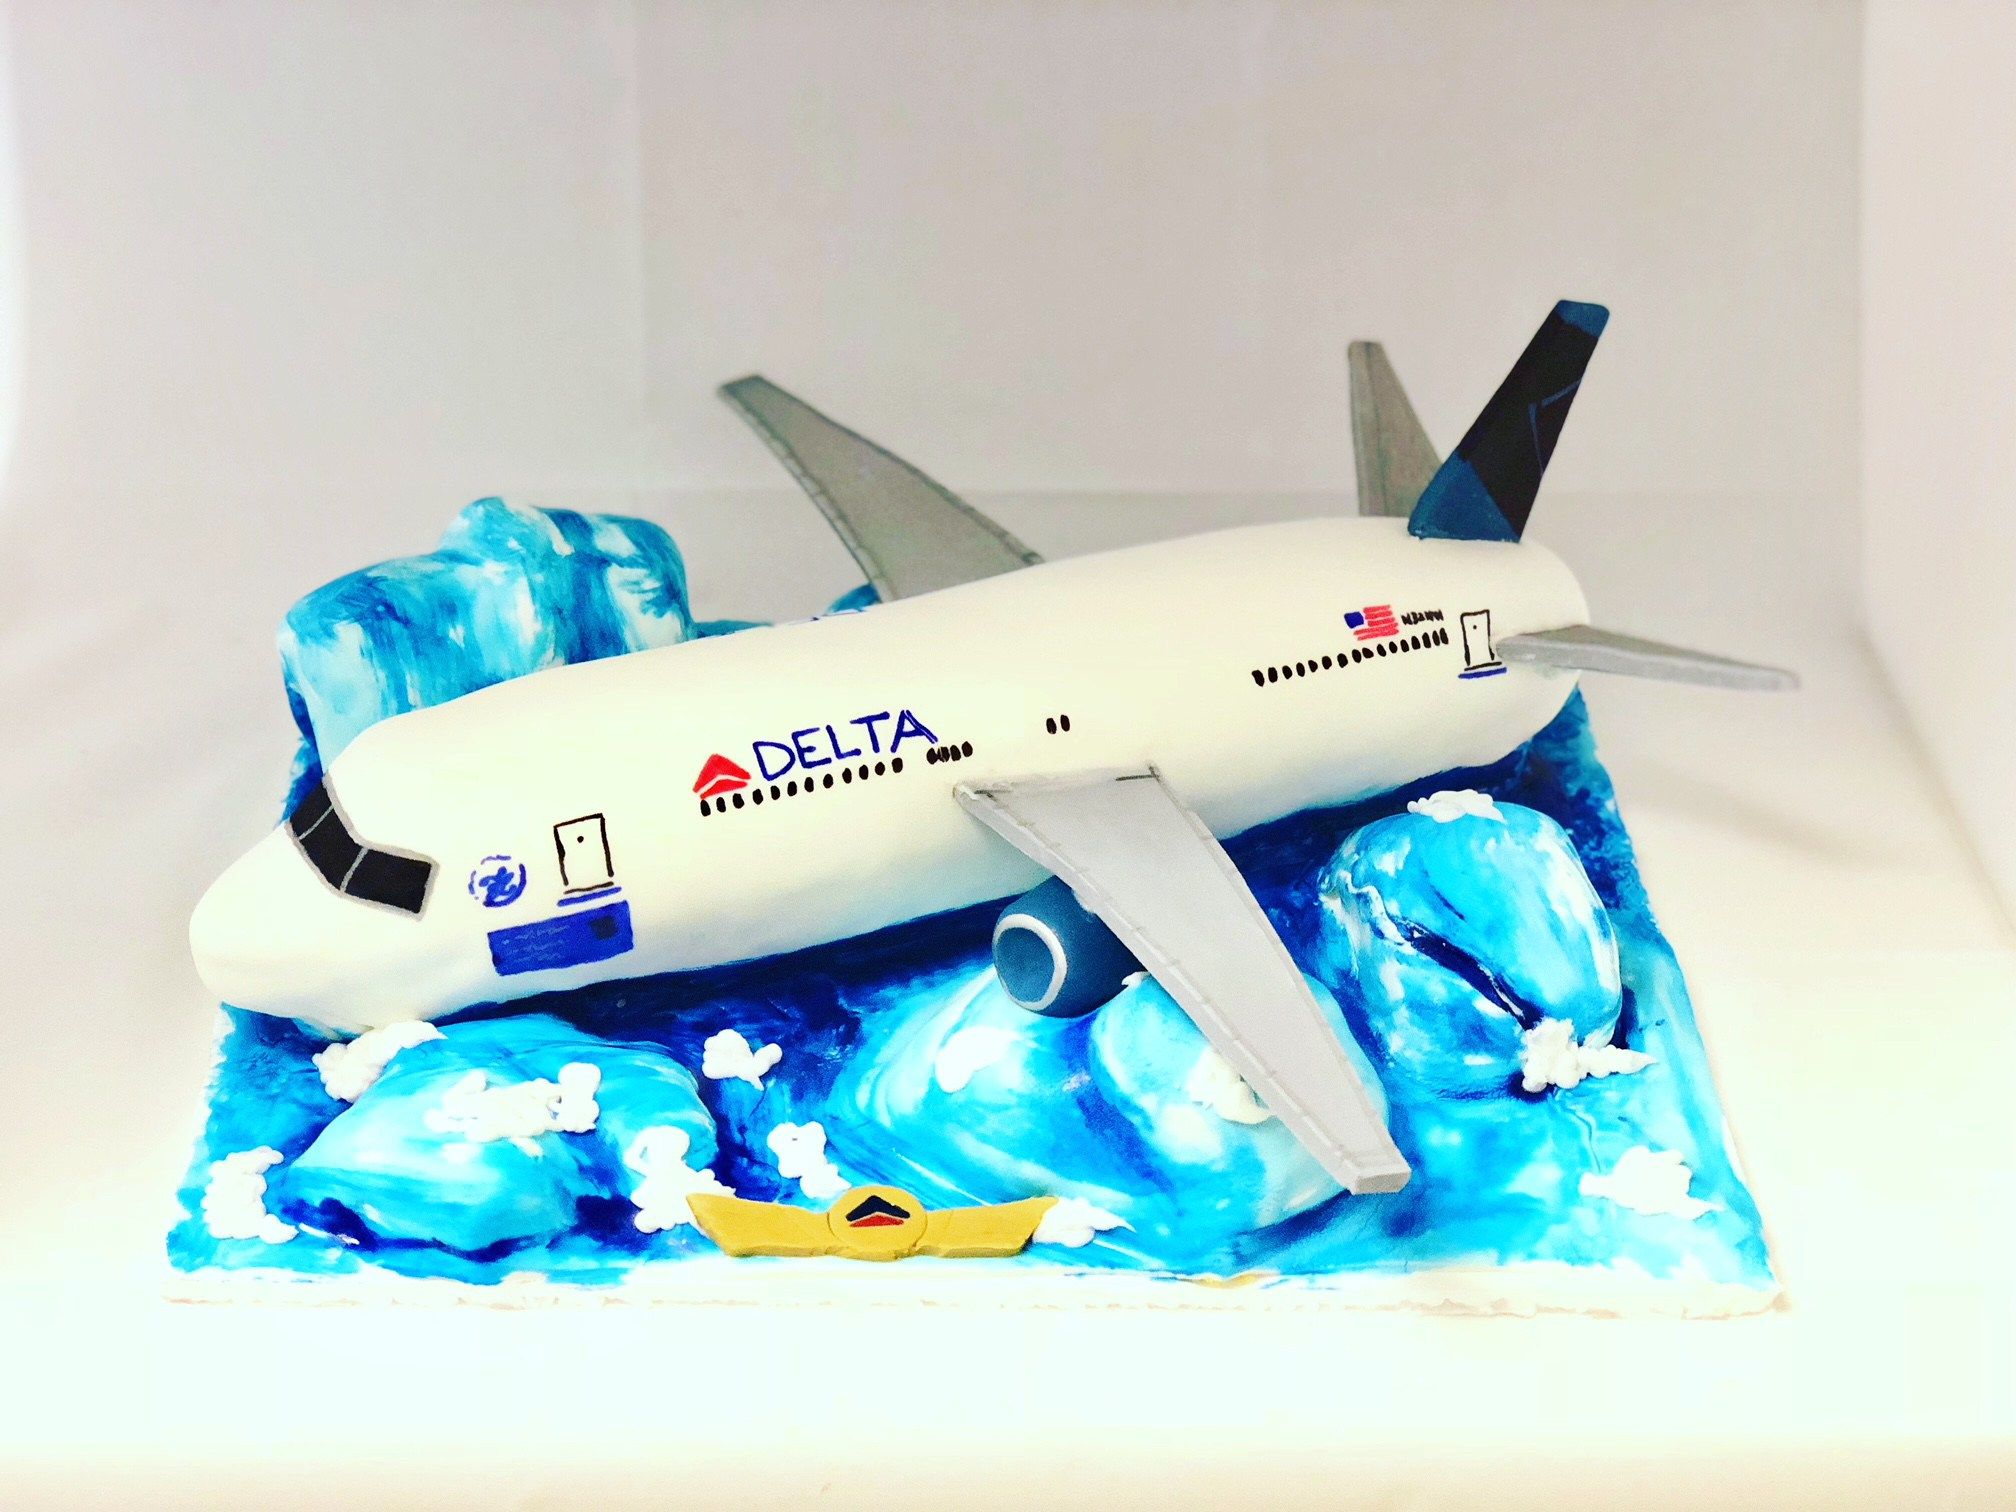 Airplane Cake MB-131 Airplane Cake MB-131 – Confection Perfection Cakes Online Ordering